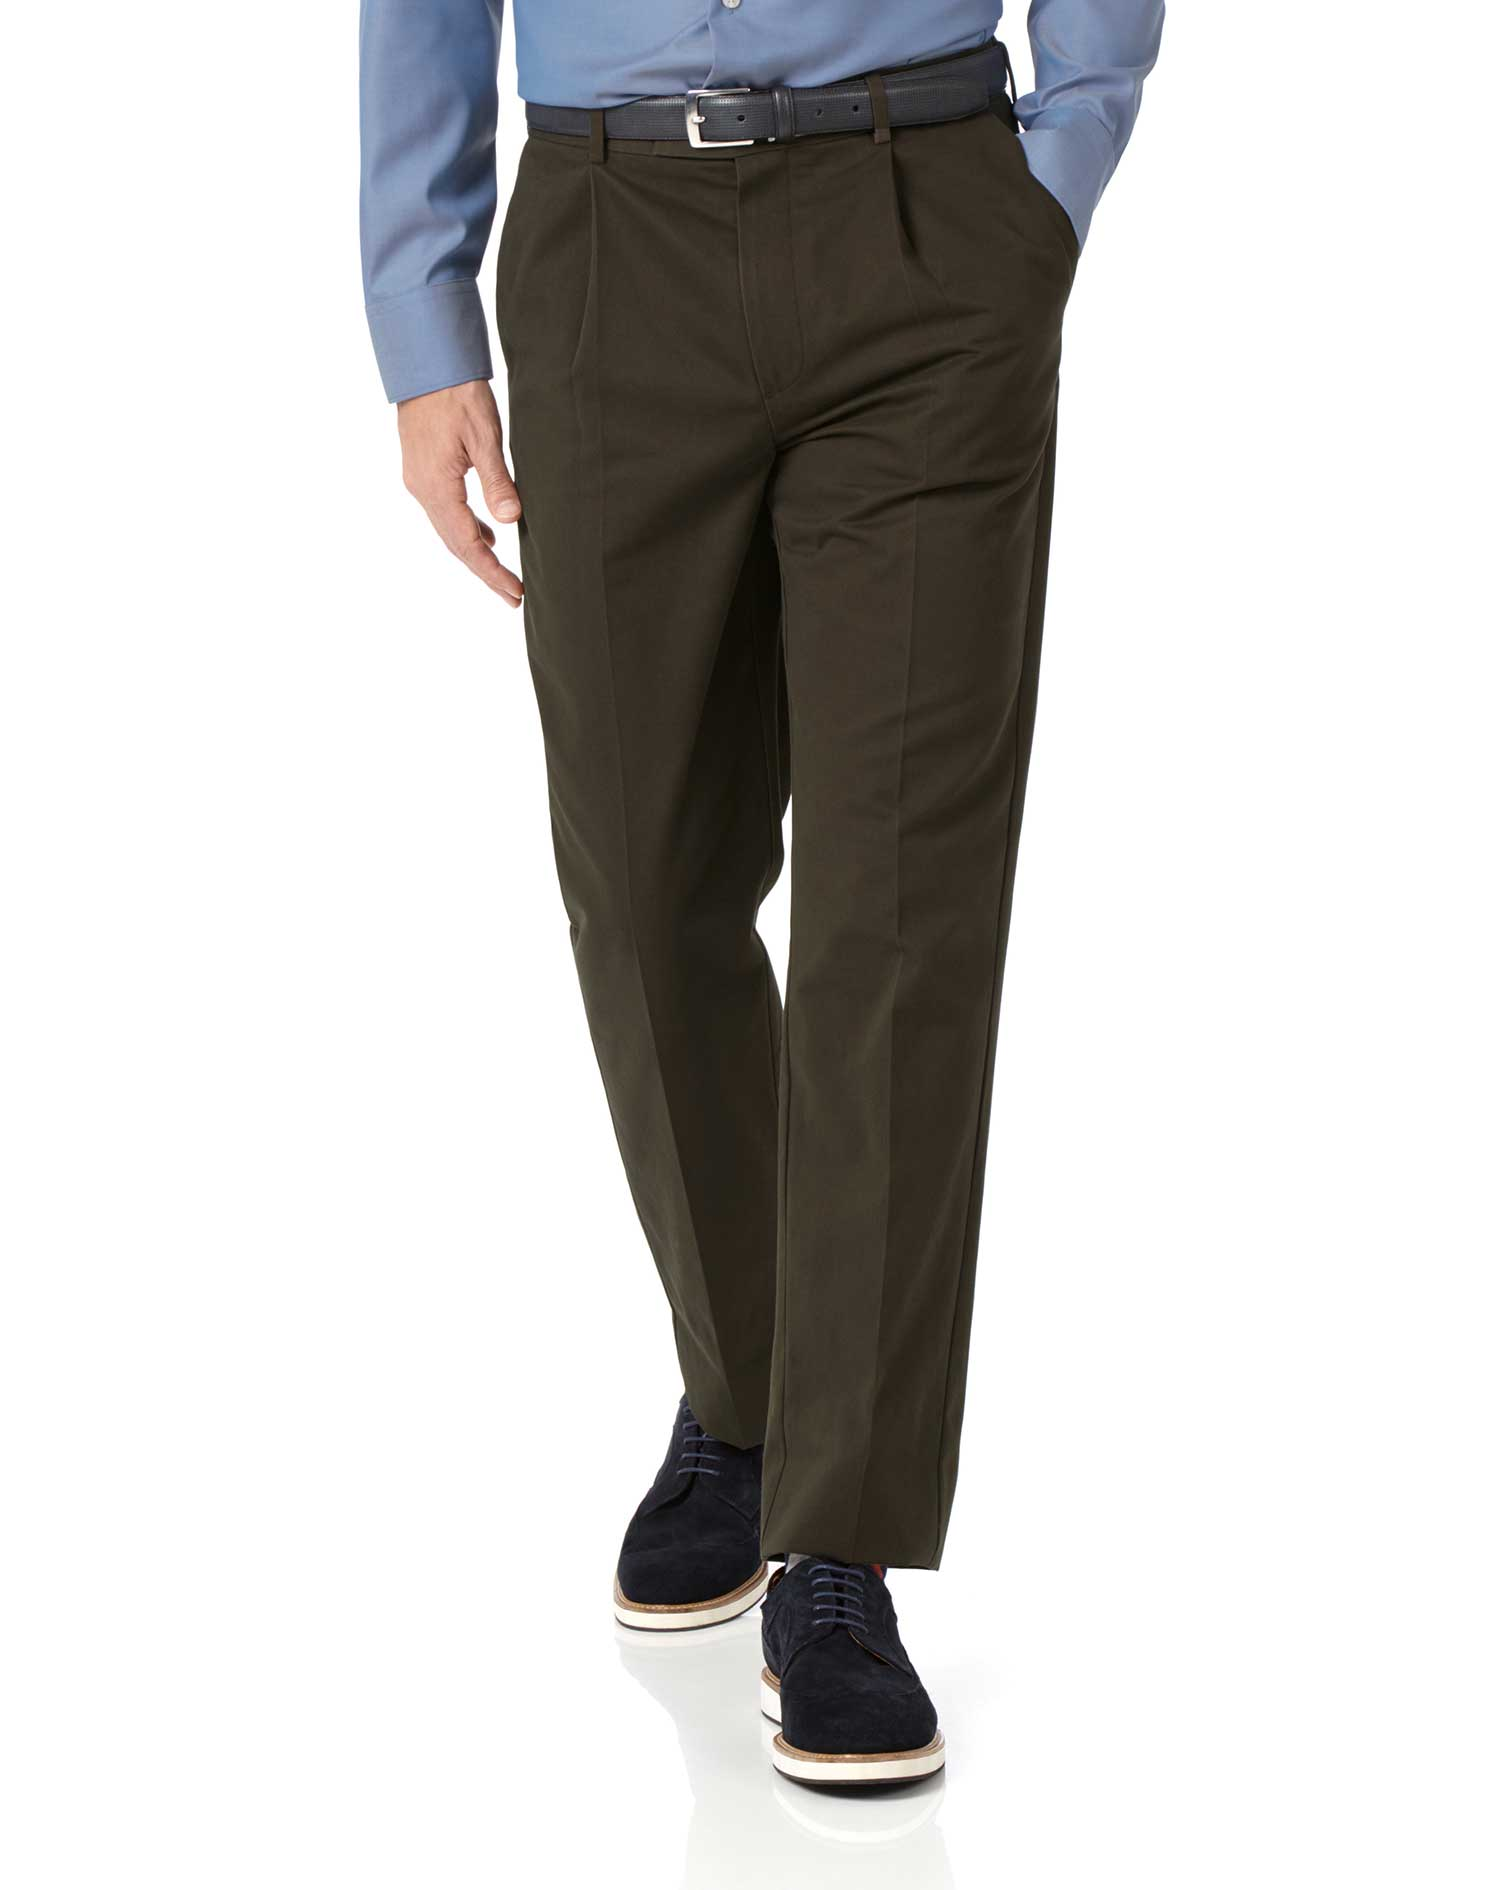 Brown Classic Fit Single Pleat Non-Iron Cotton Chino Trousers Size W40 L34 by Charles Tyrwhitt